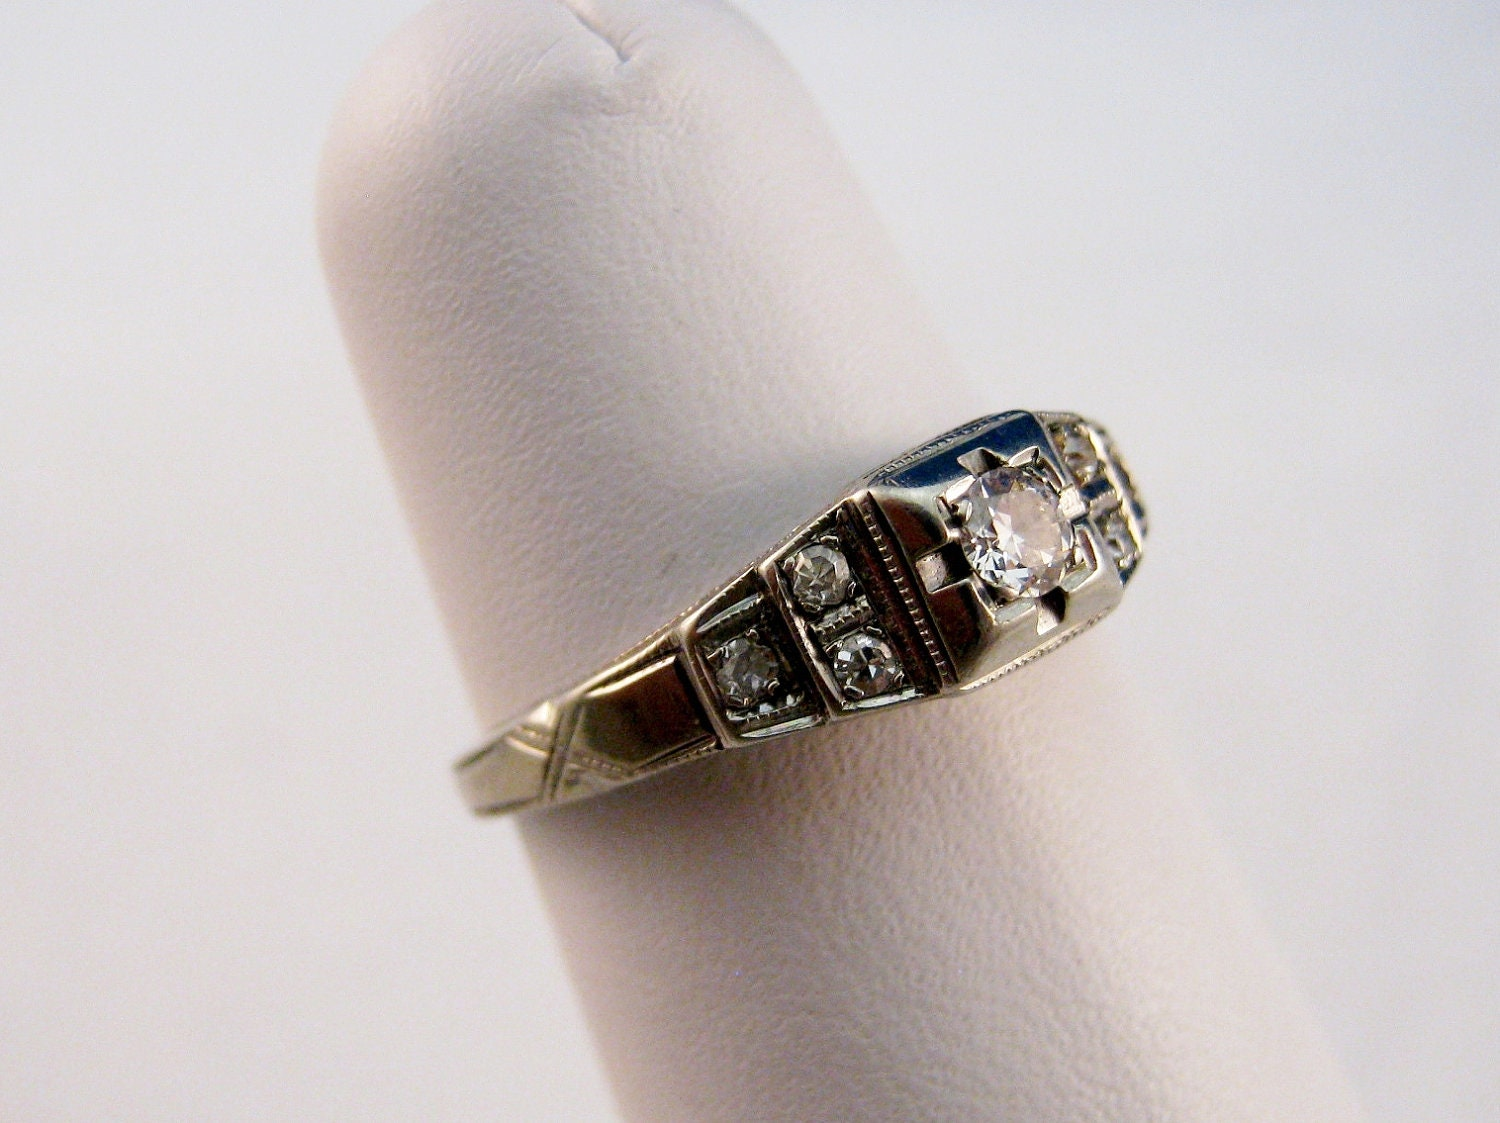 Vintage 1920 s Art Deco Diamond Engagement Ring 18kt